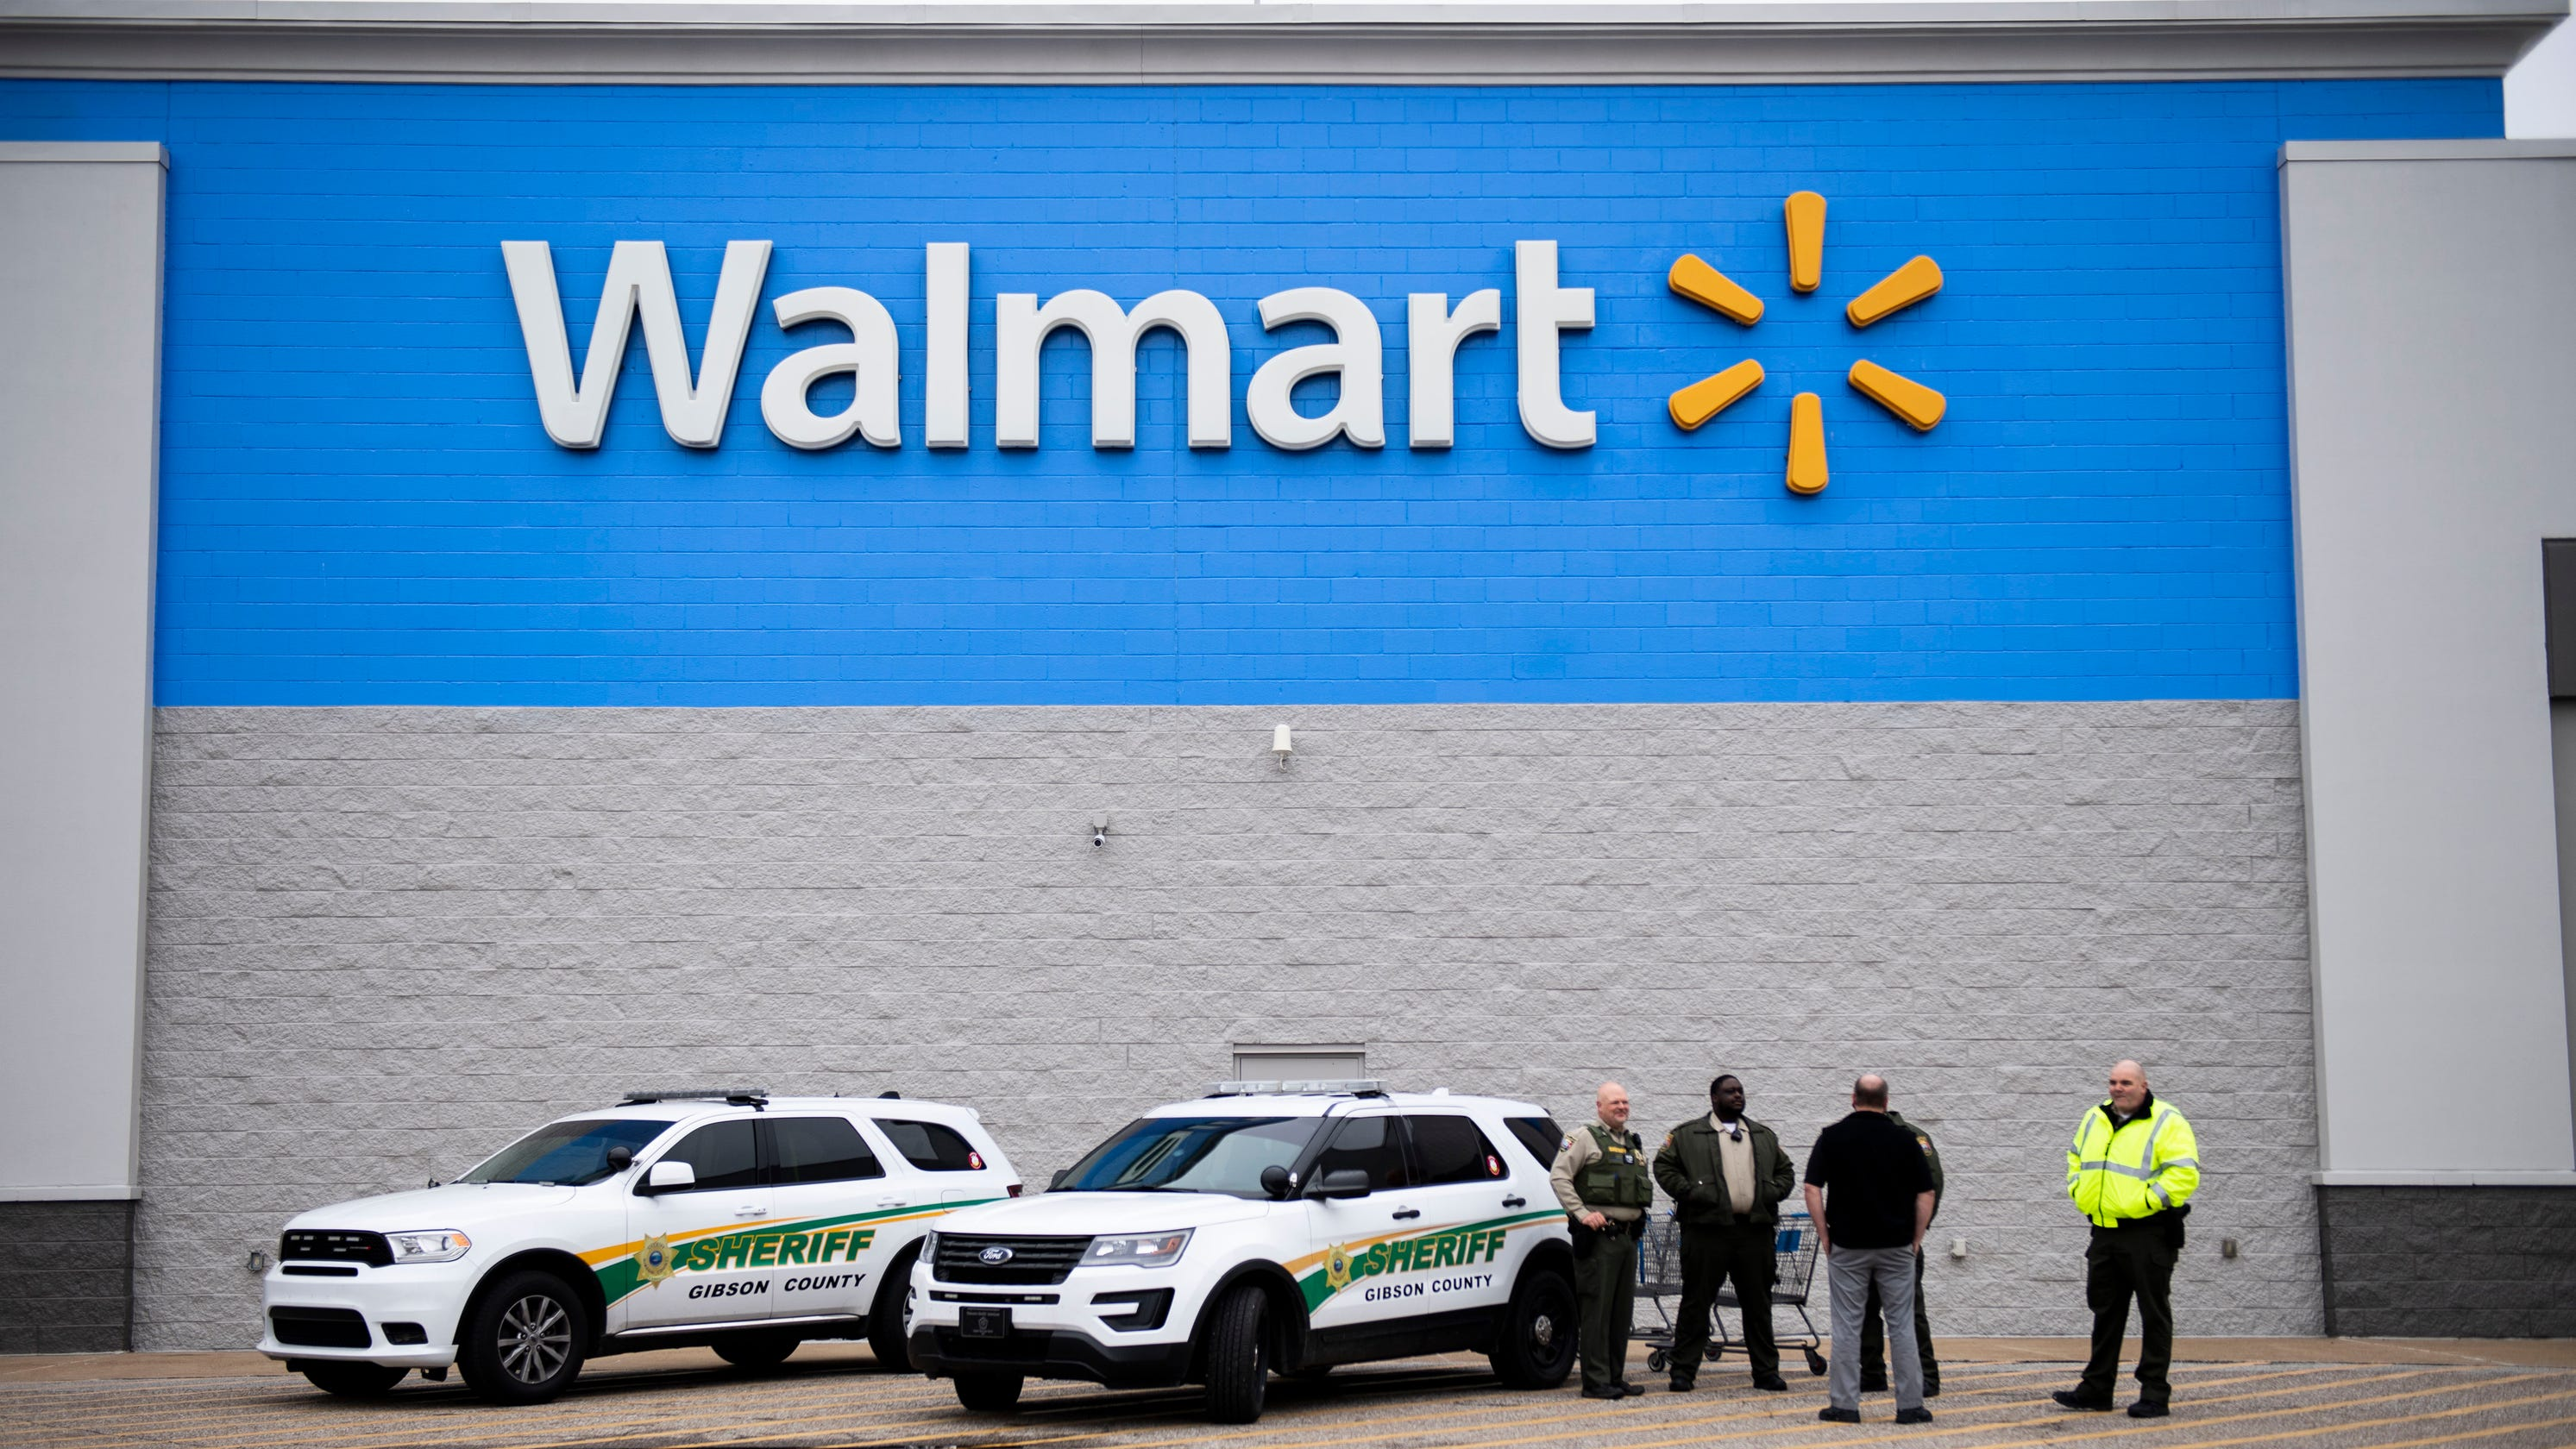 Walmart to limit the number of shoppers, as part of coronavirus response